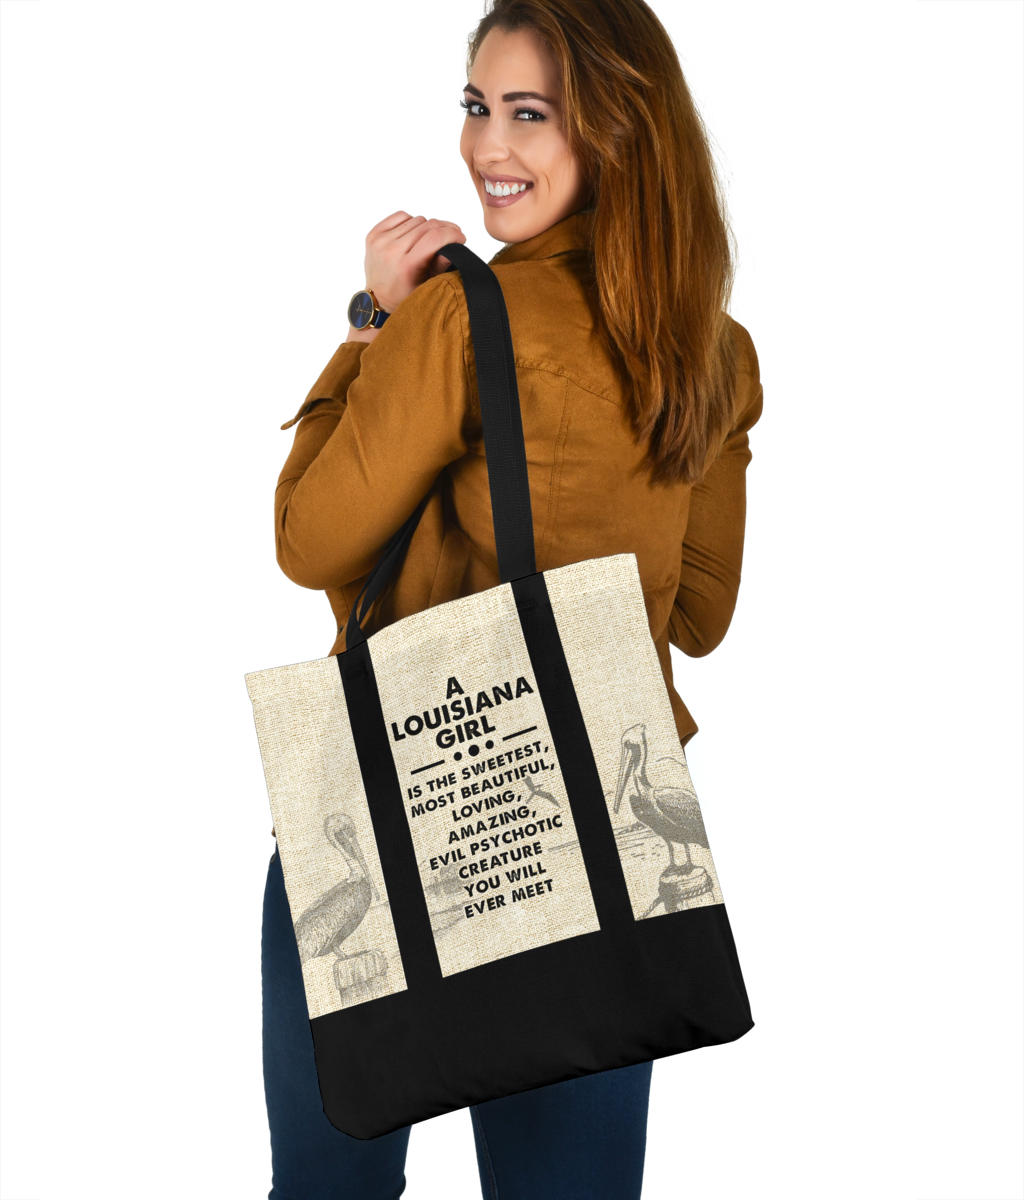 A Louisiana Girl Is The Sweetest, Most Beautiful, Loving, Amazing Tote Bag